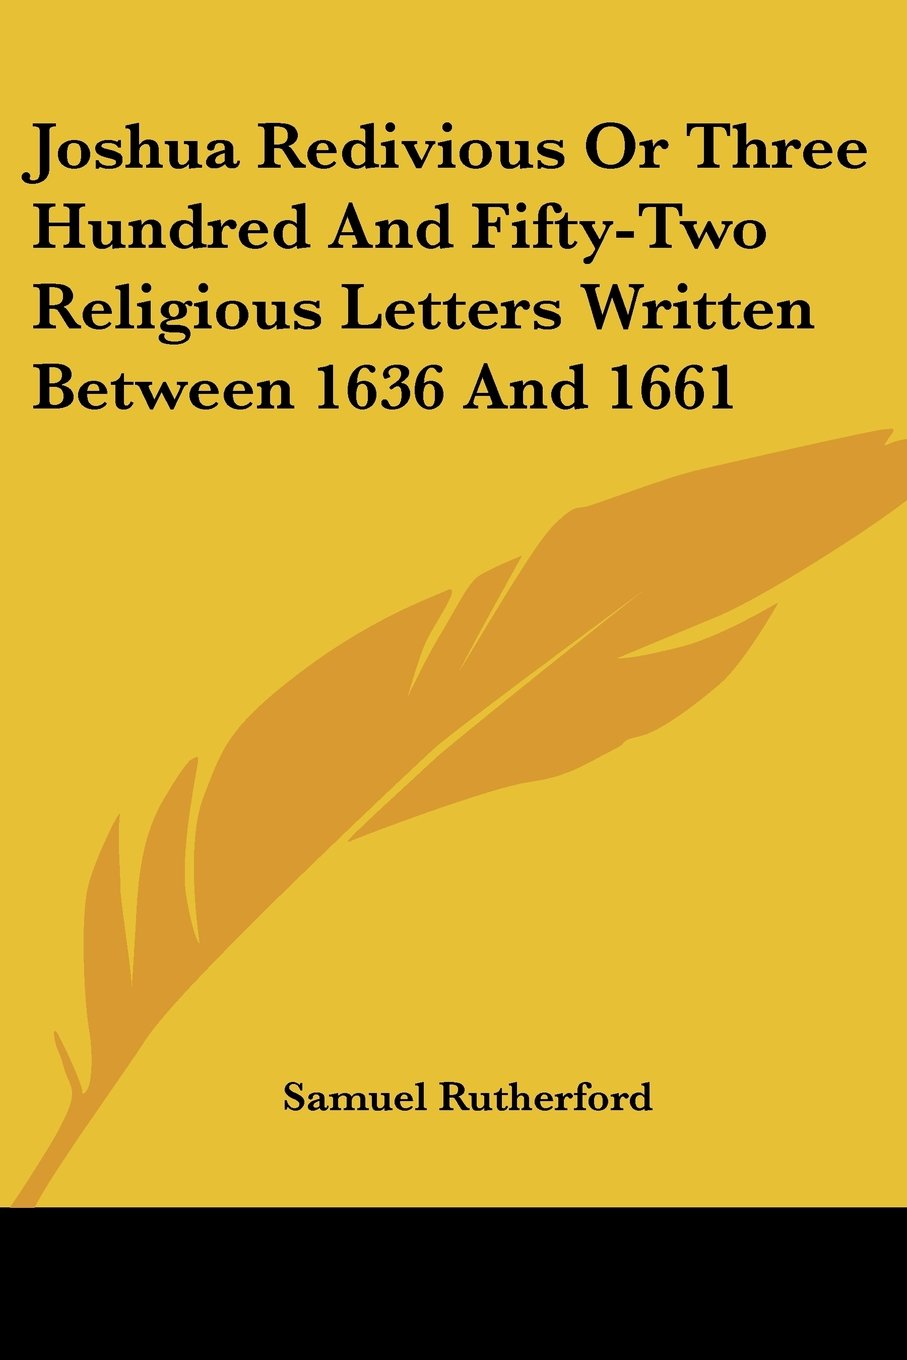 Read Online Joshua Redivious Or Three Hundred And Fifty-Two Religious Letters Written Between 1636 And 1661 ebook